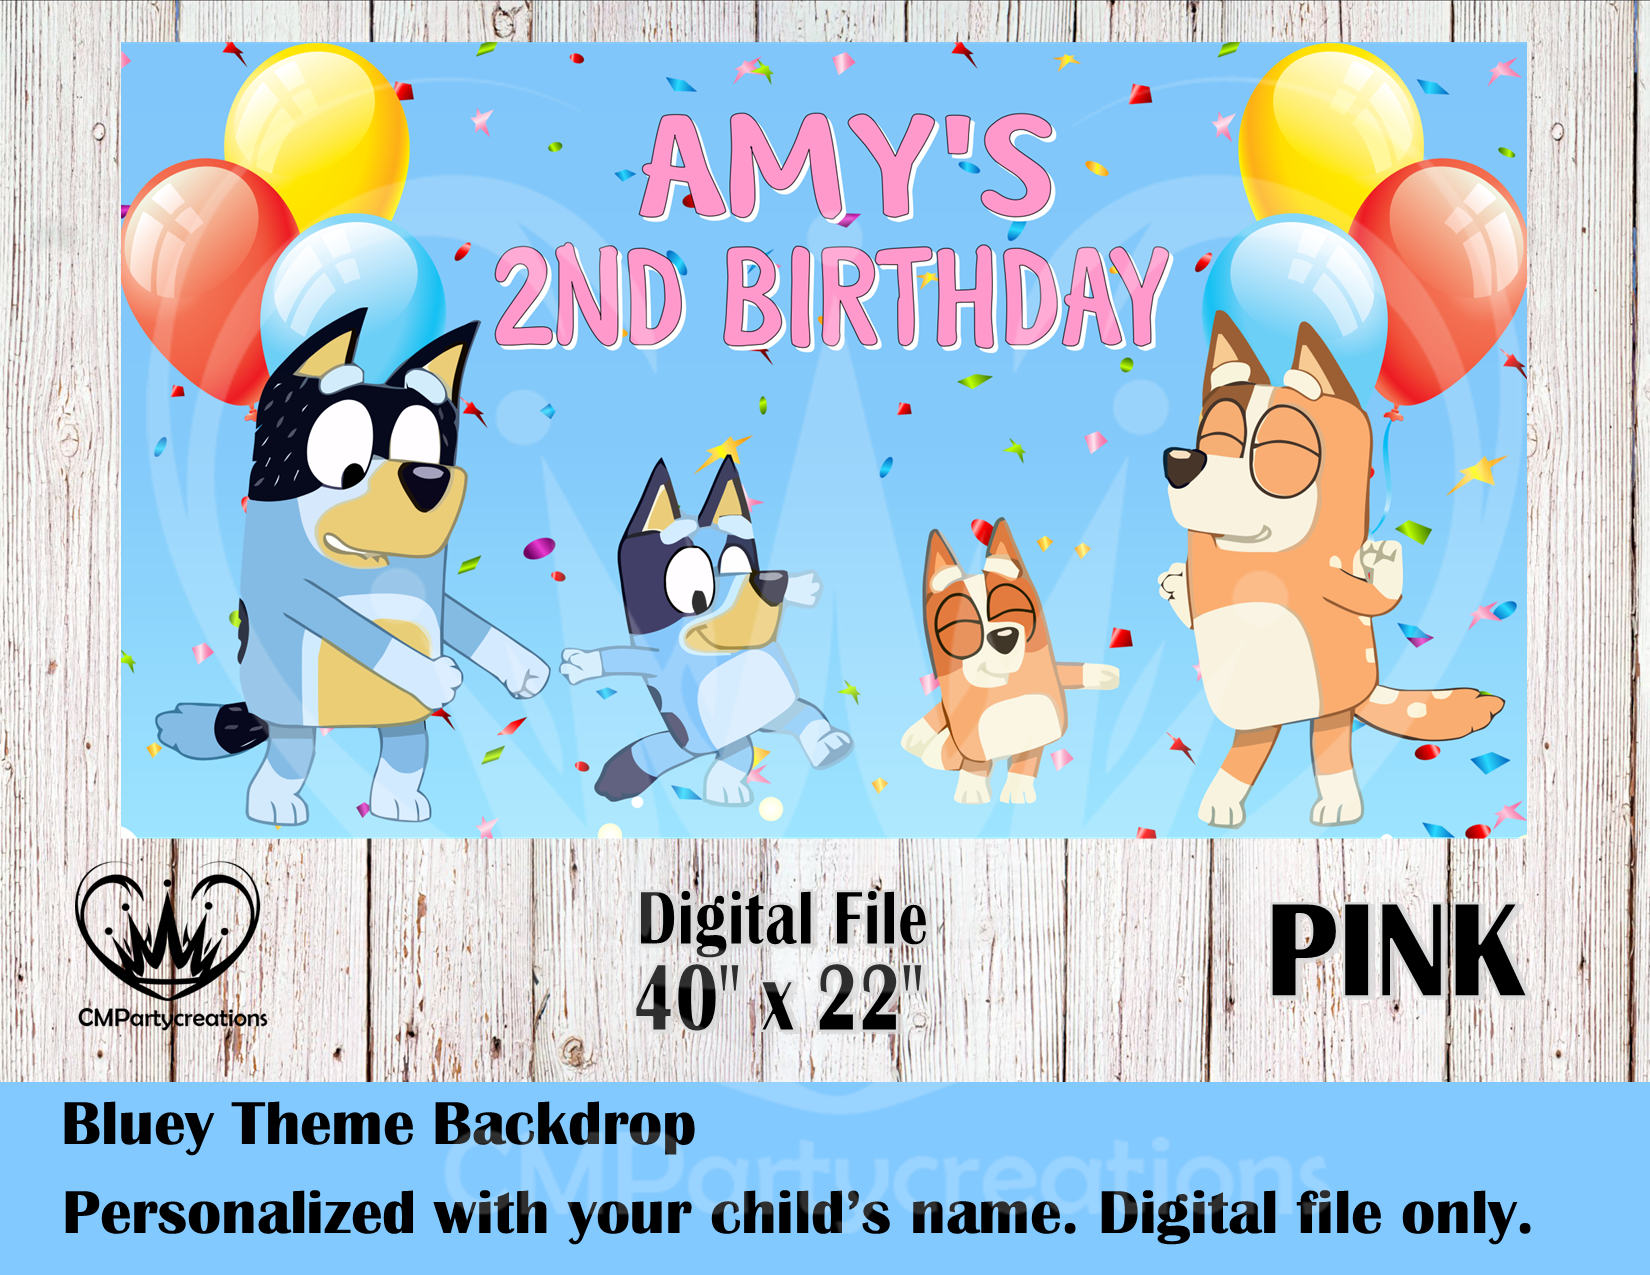 BLUEY BLUE HEELER PUPPY PERSONALISED BIRTHDAY PARTY BANNER BACKDROP BACKGROUND